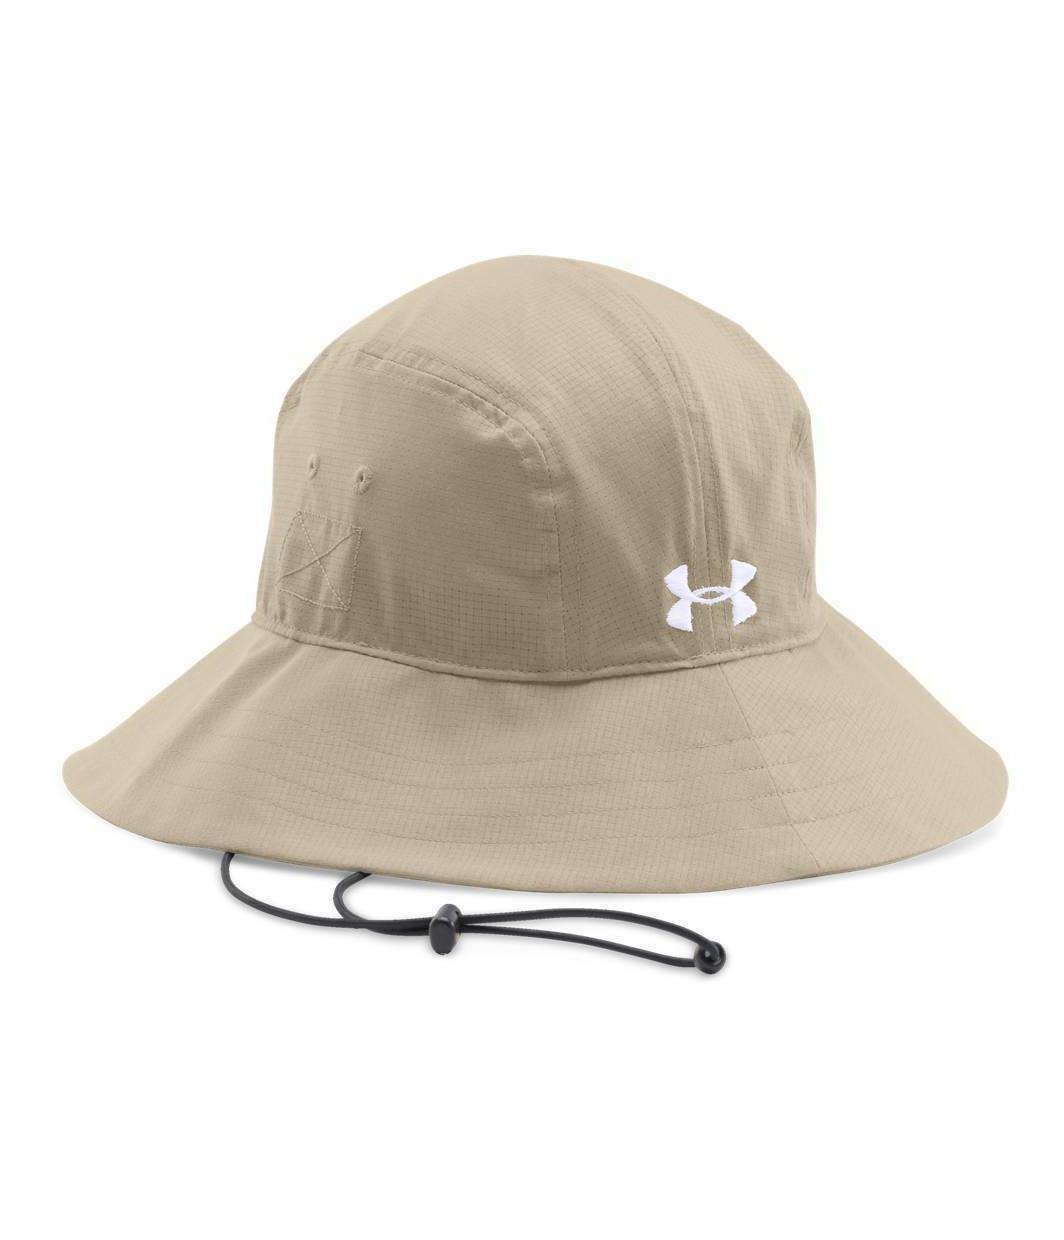 Under Armour Bucket Brand with